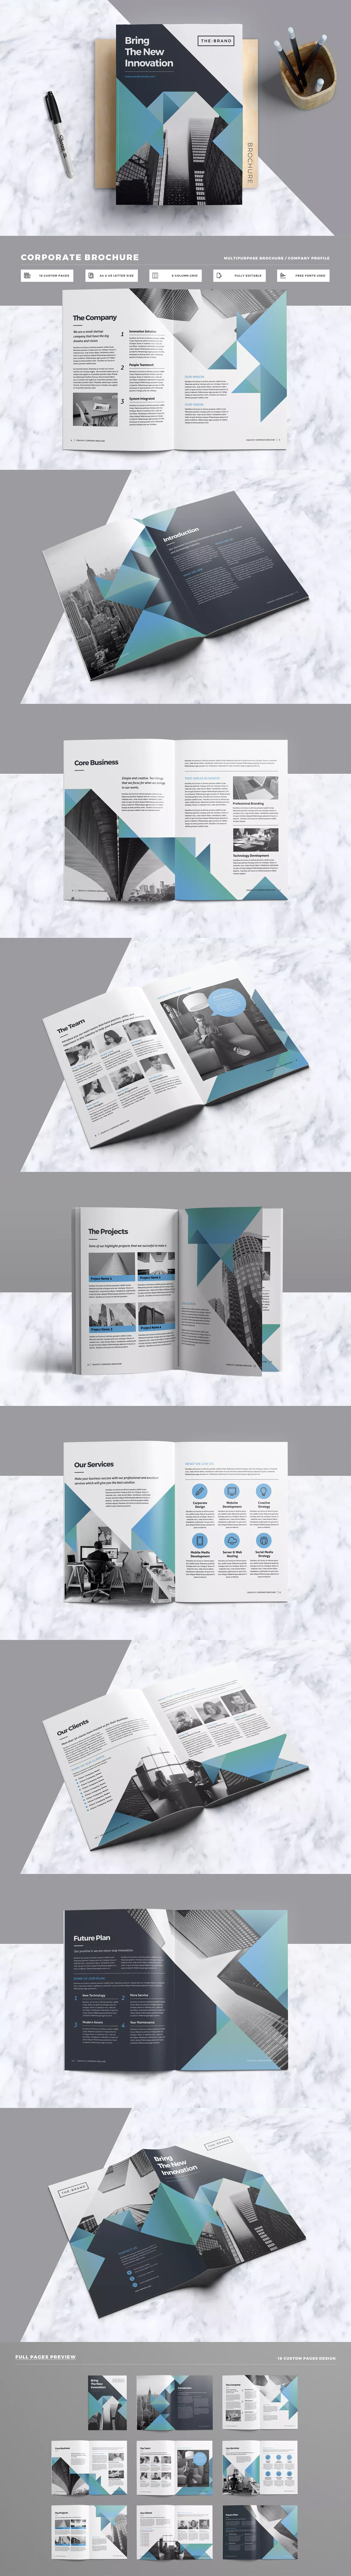 Brochure Template InDesign INDD A4 and US Letter Size | Graphic ...